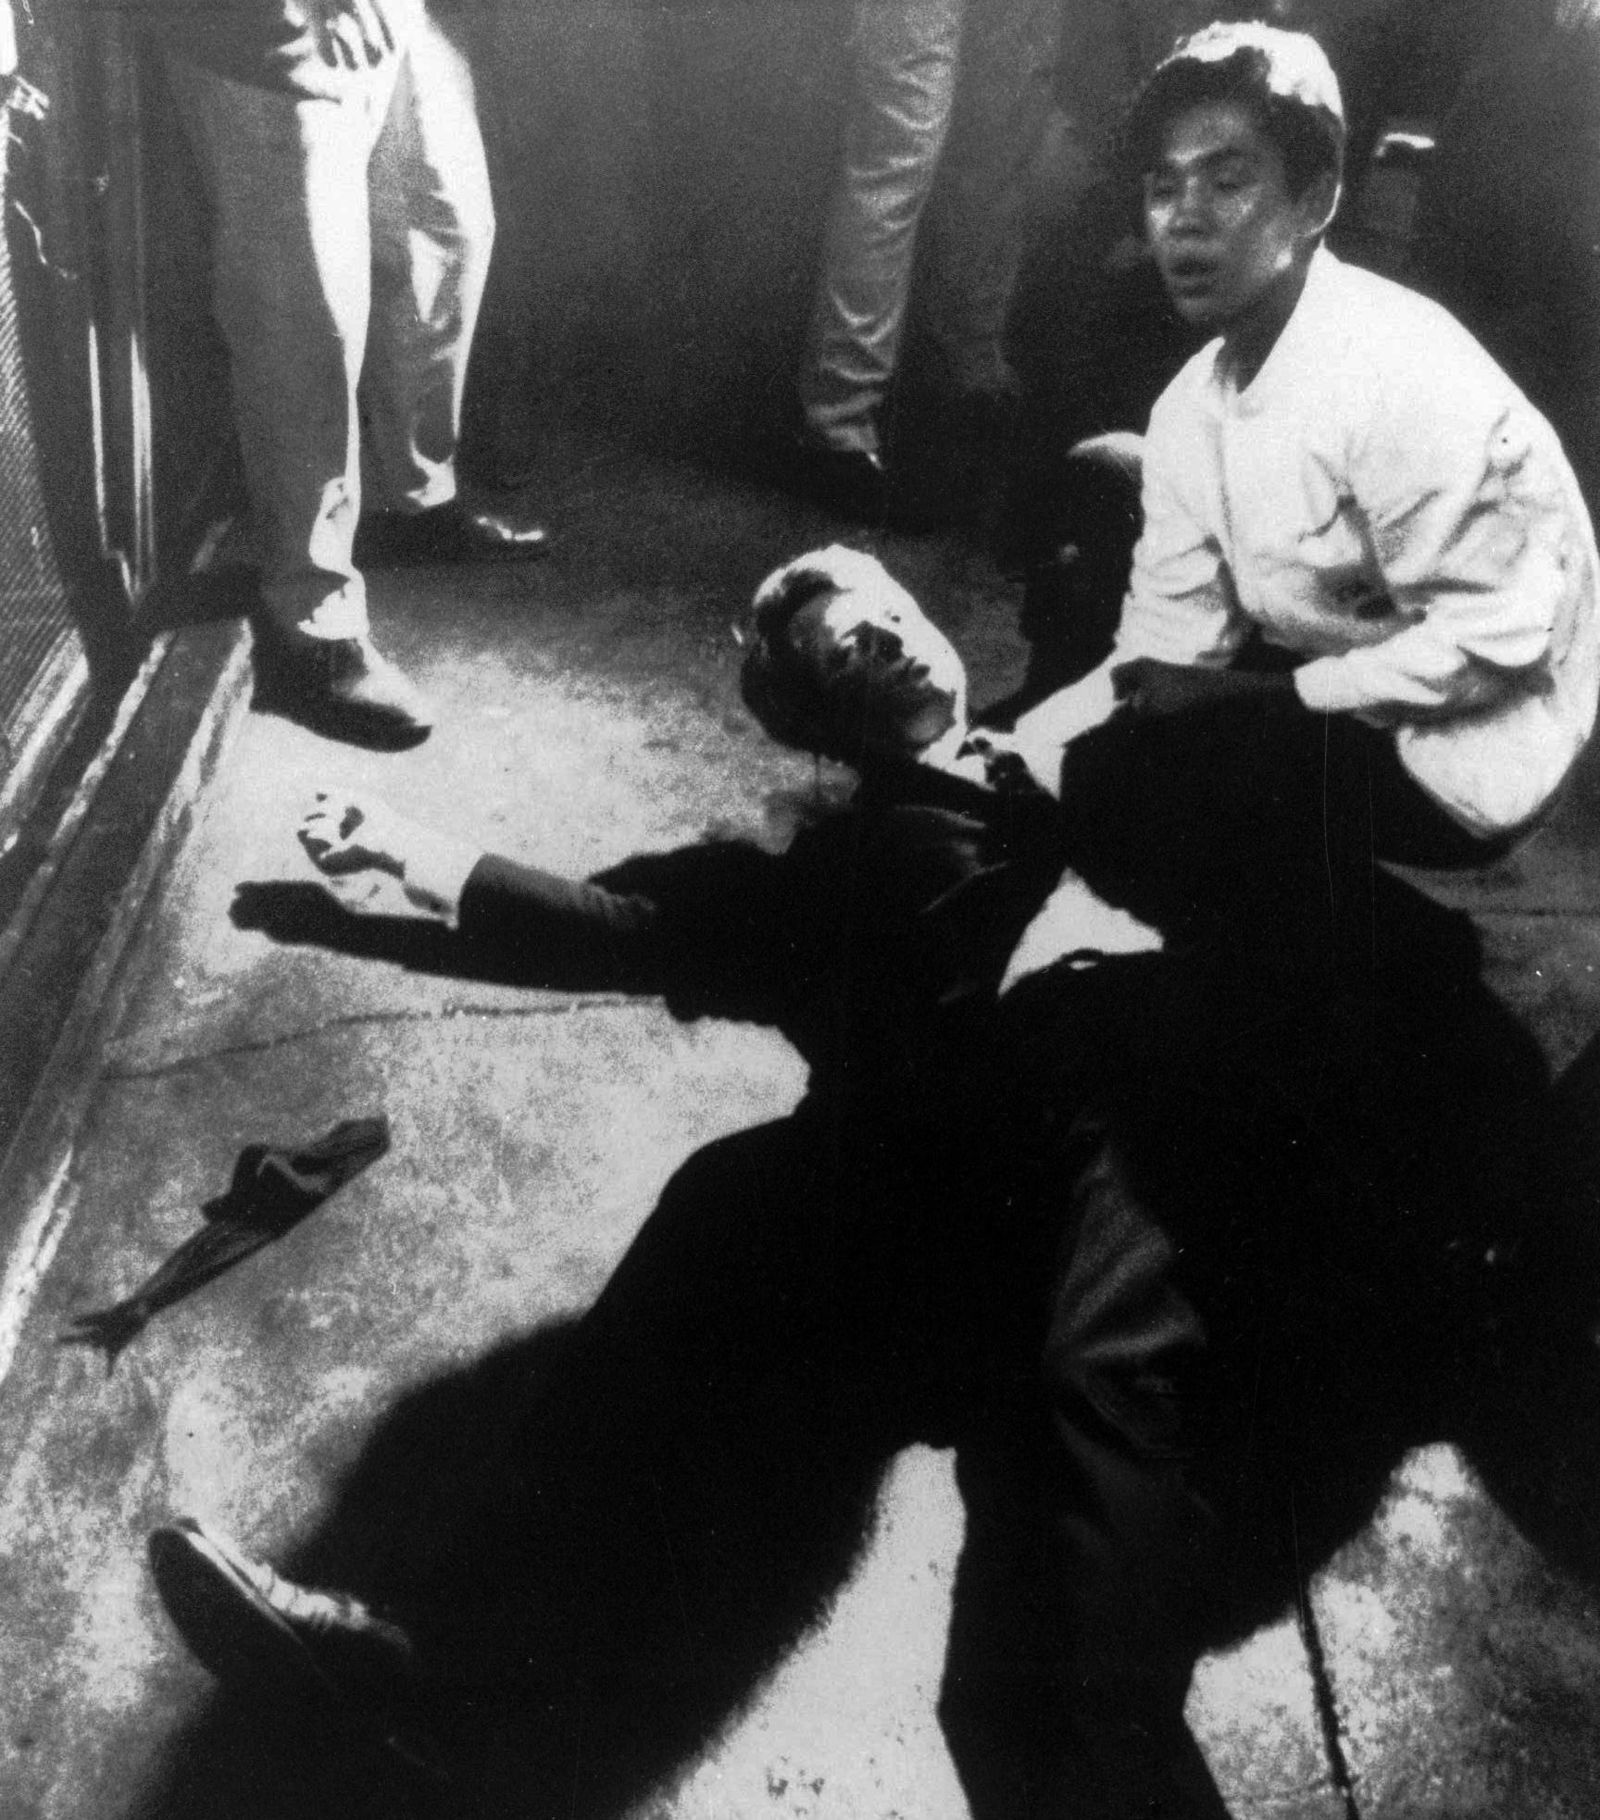 FILE - In this June 5, 1968 file photo,  Hotel busboy Juan Romero, right, comes to the aid of Senator Robert F. Kennedy,  as he lies on the floor of the Ambassador hotel in Los Angeles moments after he was shot. (Boris Yaro/Los Angeles Times via AP)